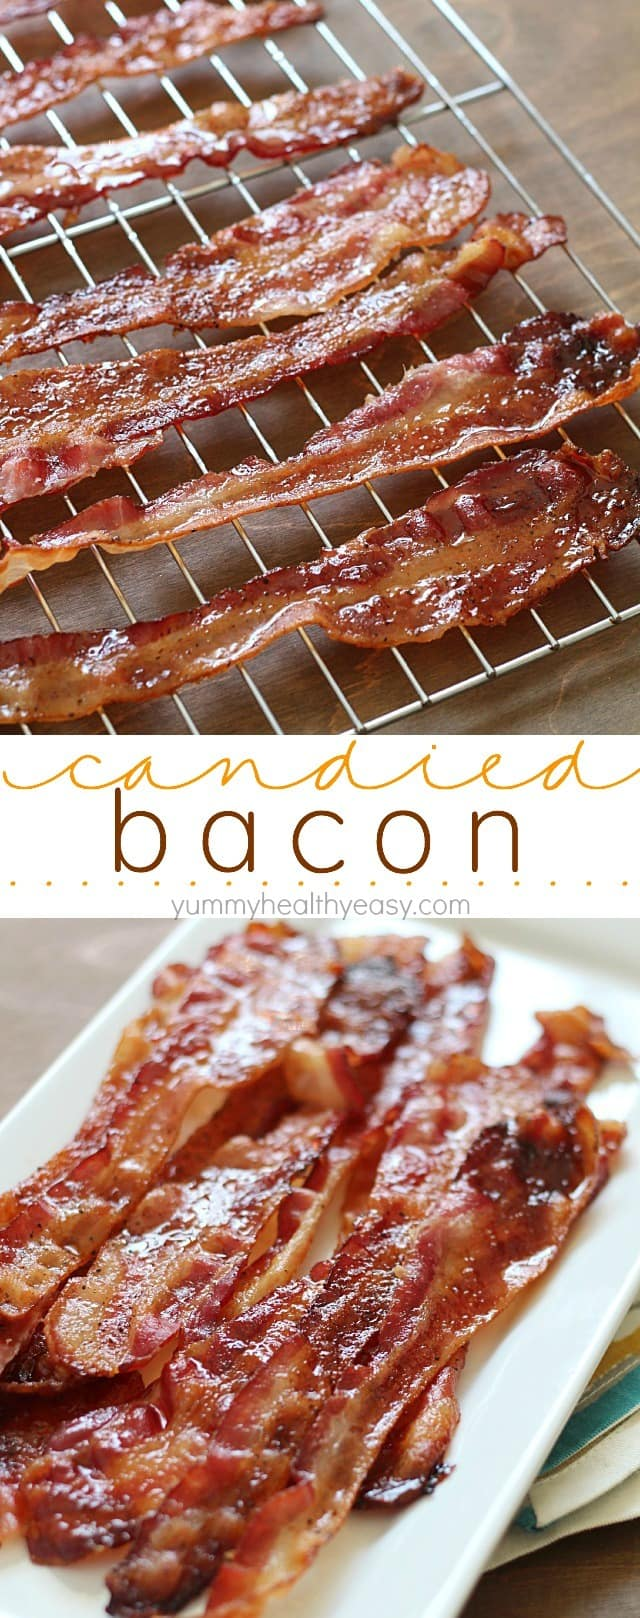 Brown Sugar Bacon aka Candied Bacon - Yummy Healthy Easy